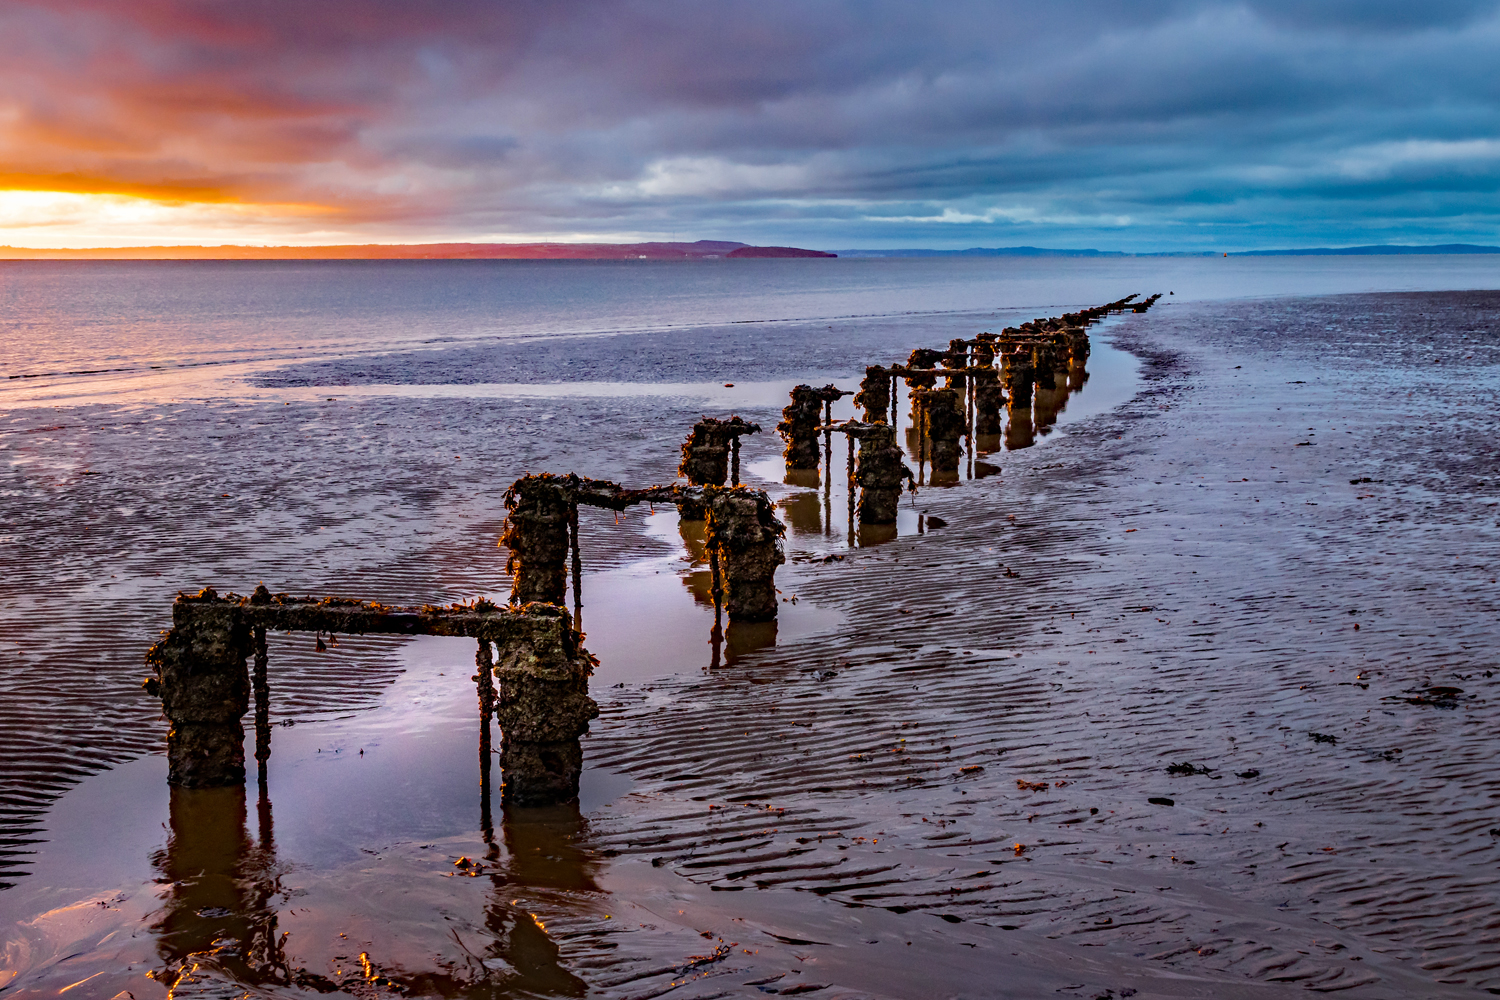 North Wales - old jetty foundations on west beach at Llandudno at sunset